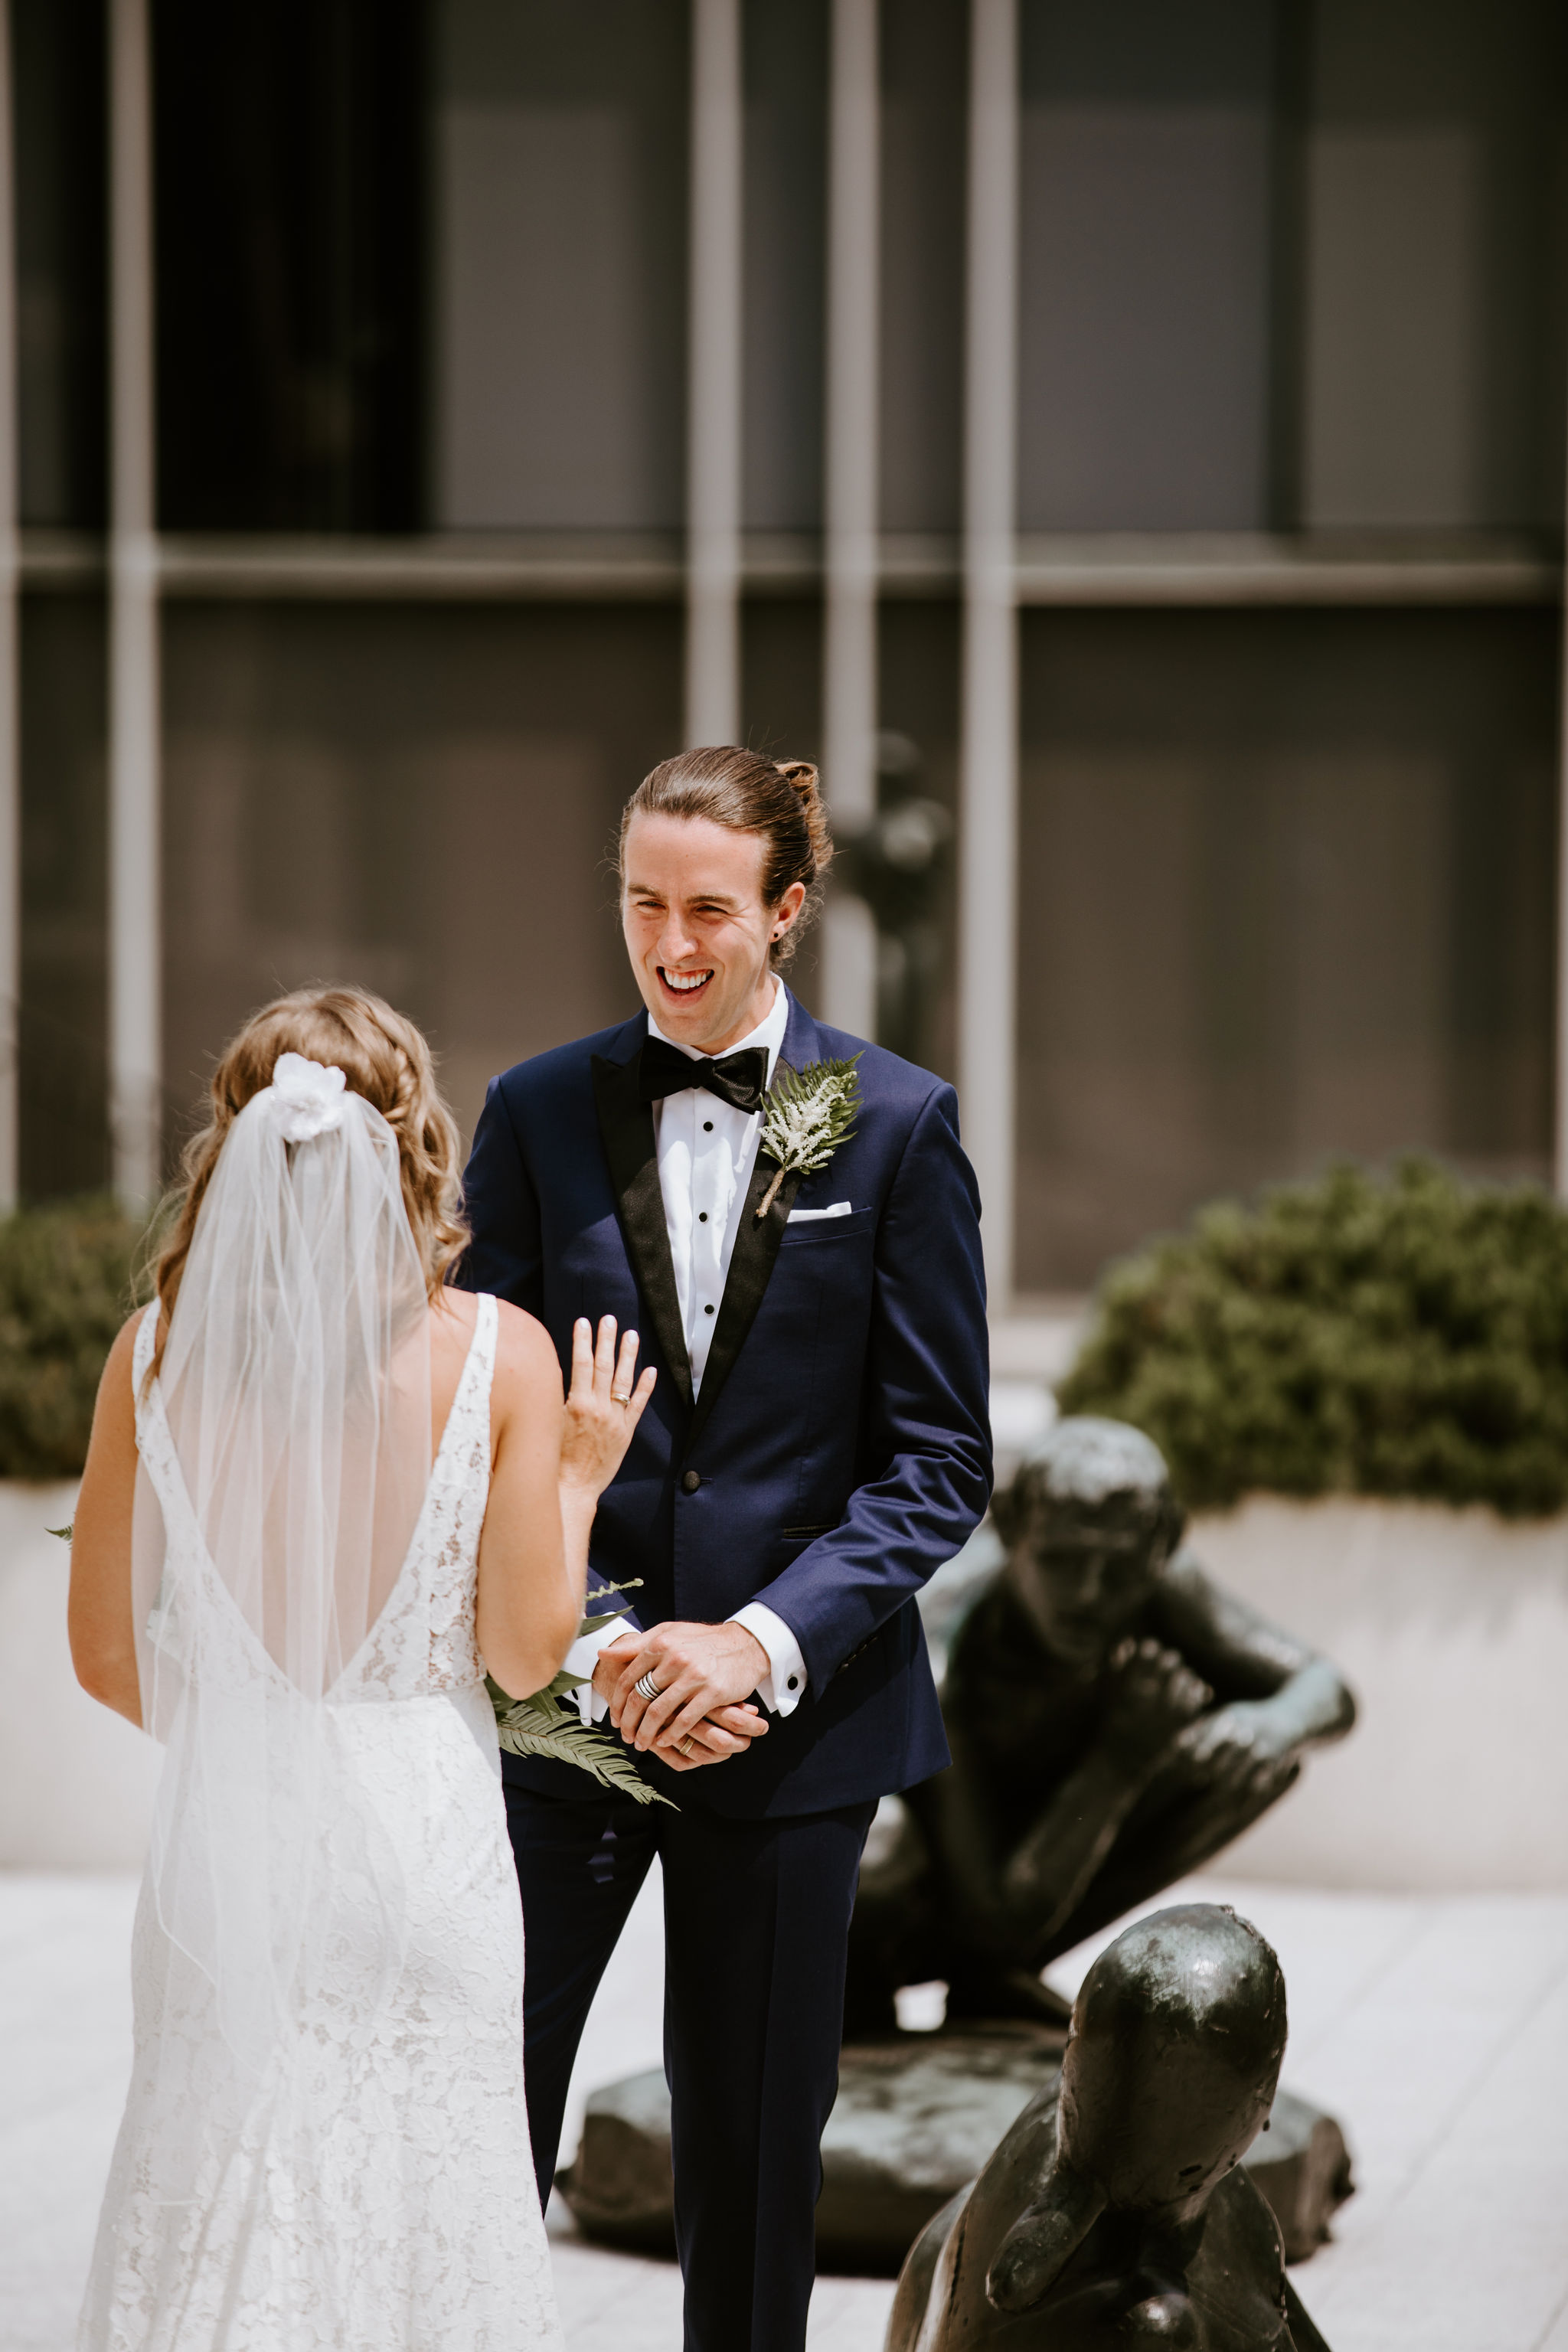 DetroitIndustrialWedding_Geoff&LyndsiPhotography_Alex&Jen_FirstLook13.jpg